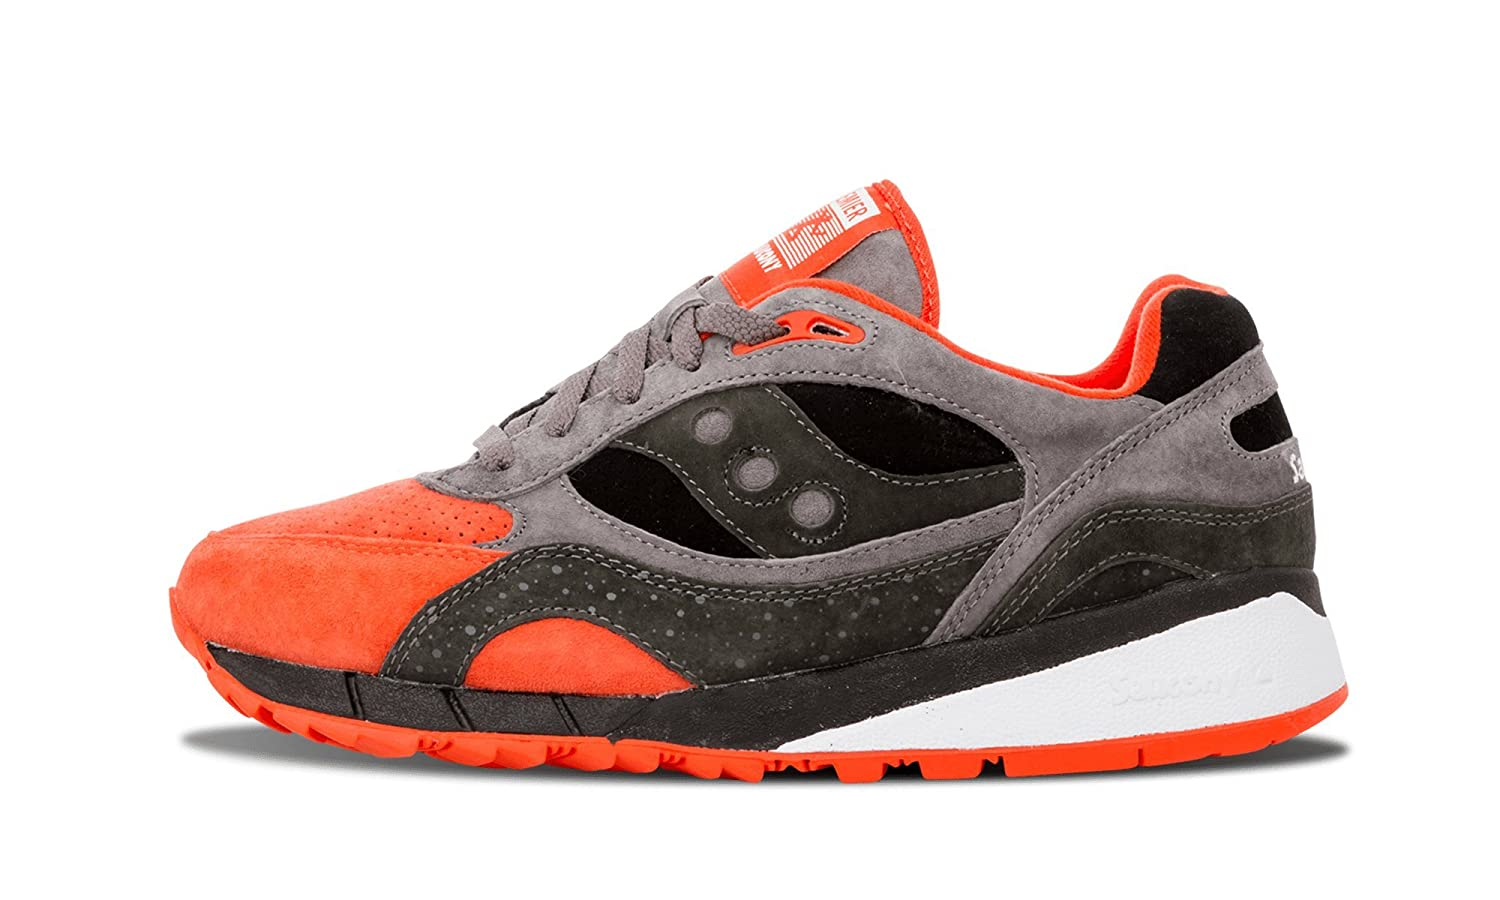 quality design 38b15 c86b8 Amazon.com: Saucony Shadow 6000 -US 11: Shoes